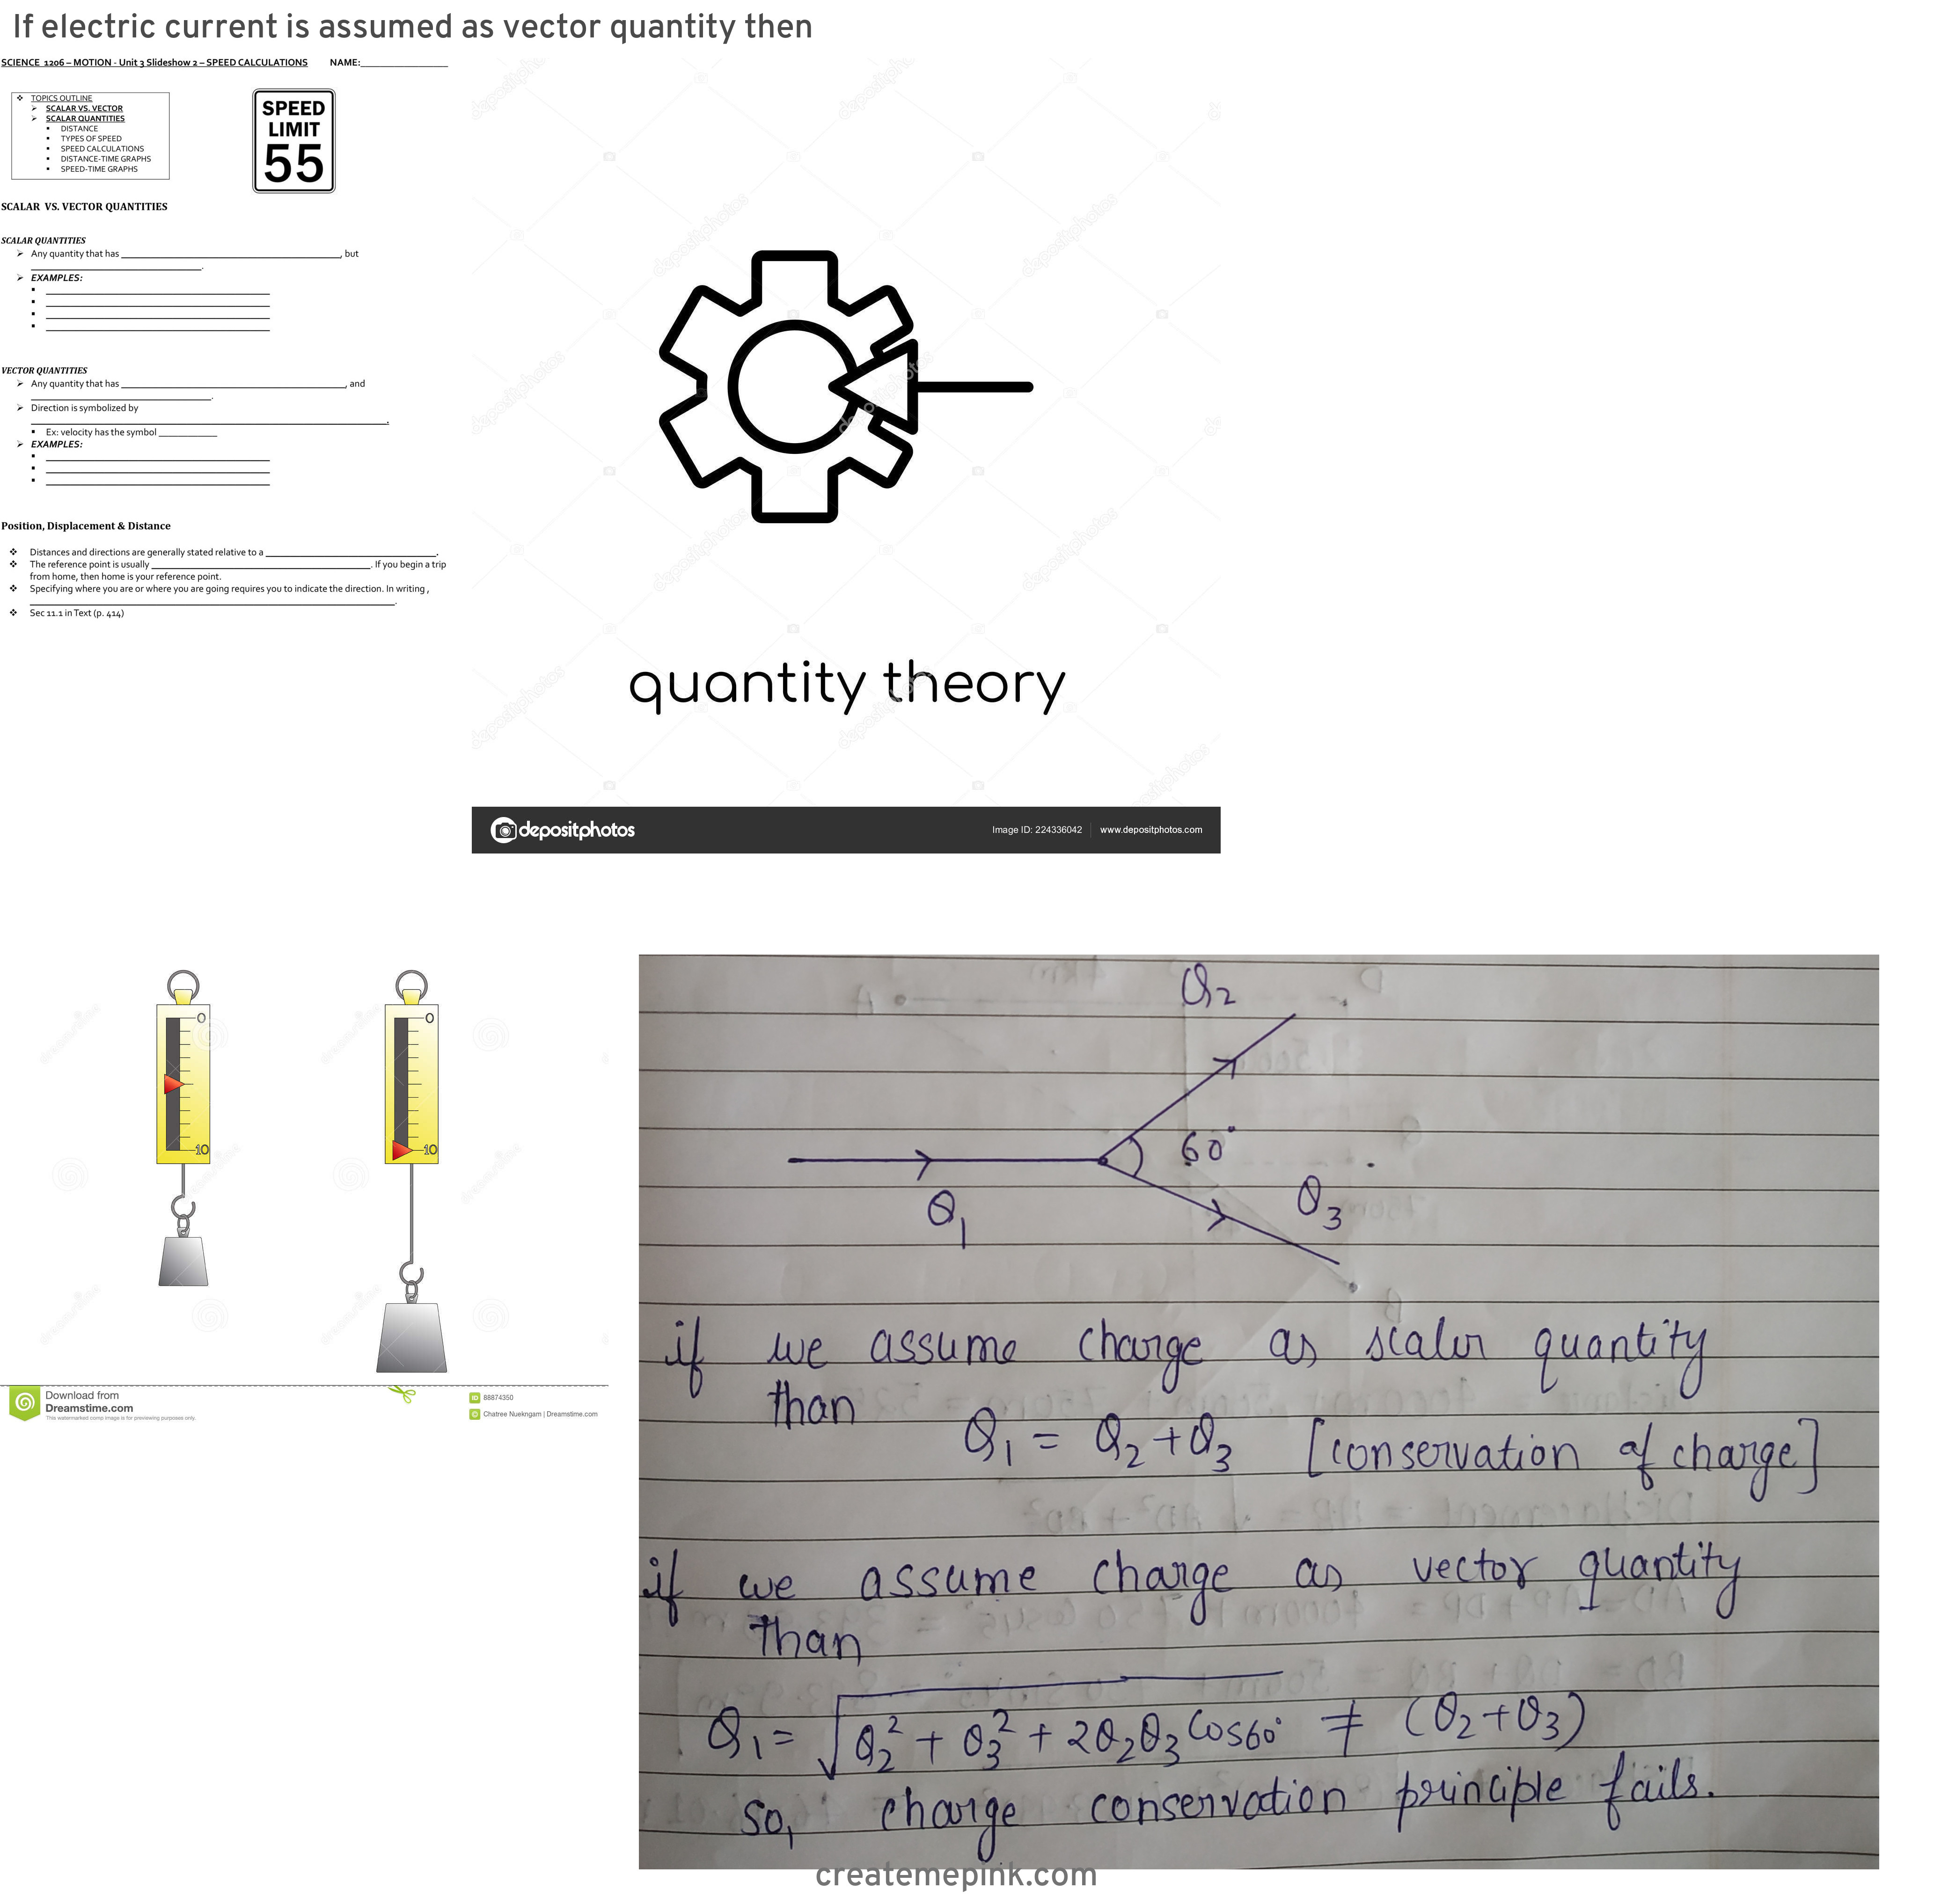 Vector Quantity: If Electric Current Is Assumed As Vector Quantity Then